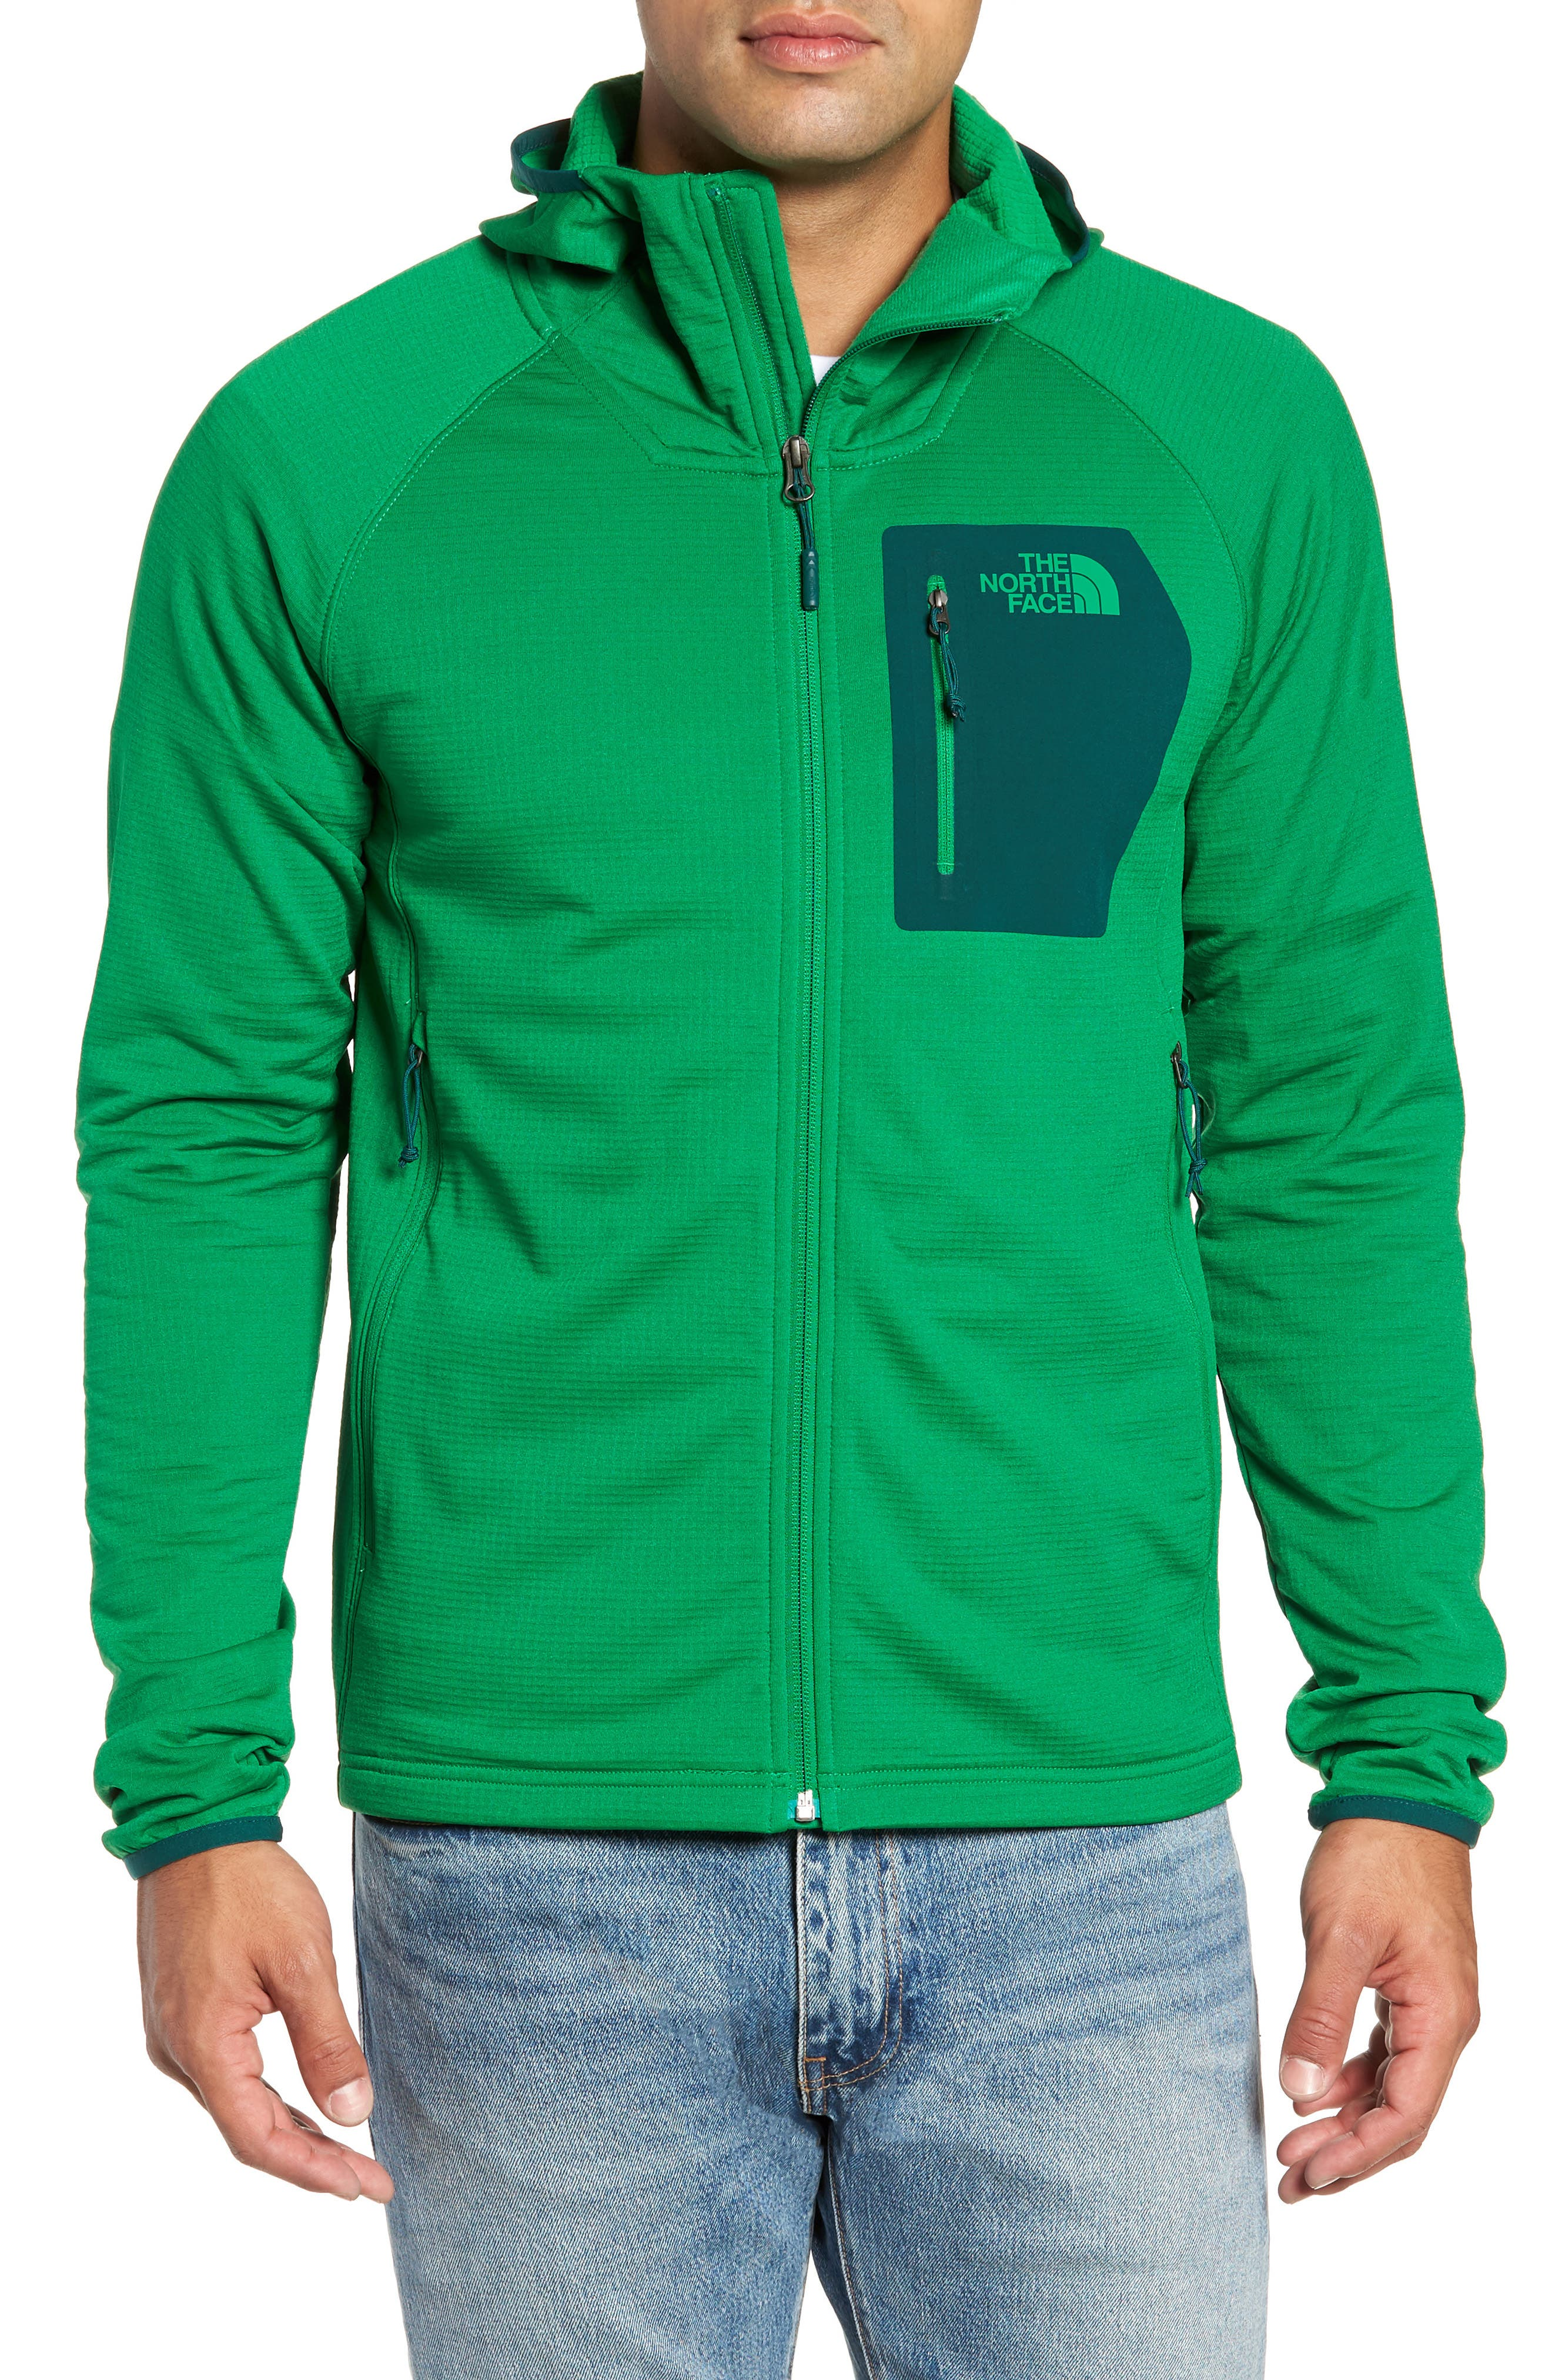 THE NORTH FACE, Borod Zip Fleece Jacket, Alternate thumbnail 4, color, 301